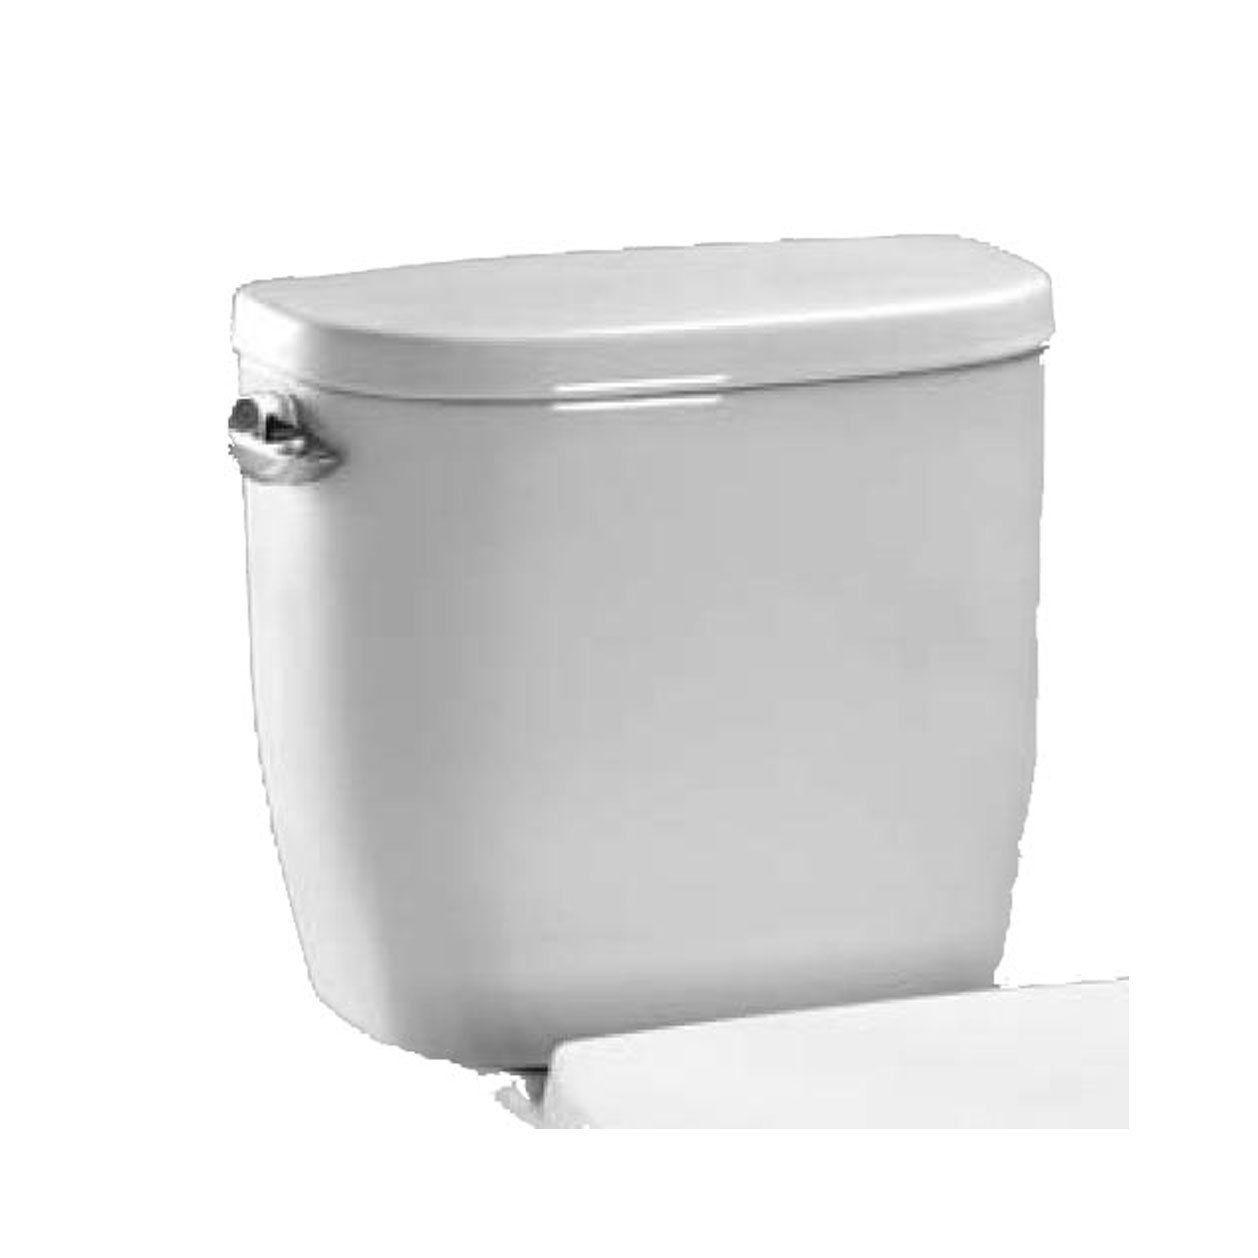 Toto ST243E#01 Entrada Close Coupled Elongated Toilet Tank And Cover, White White - Toilet Water Tank… | Toilet Tank, Bathroom Essentials, Guest Bathroom Essentials